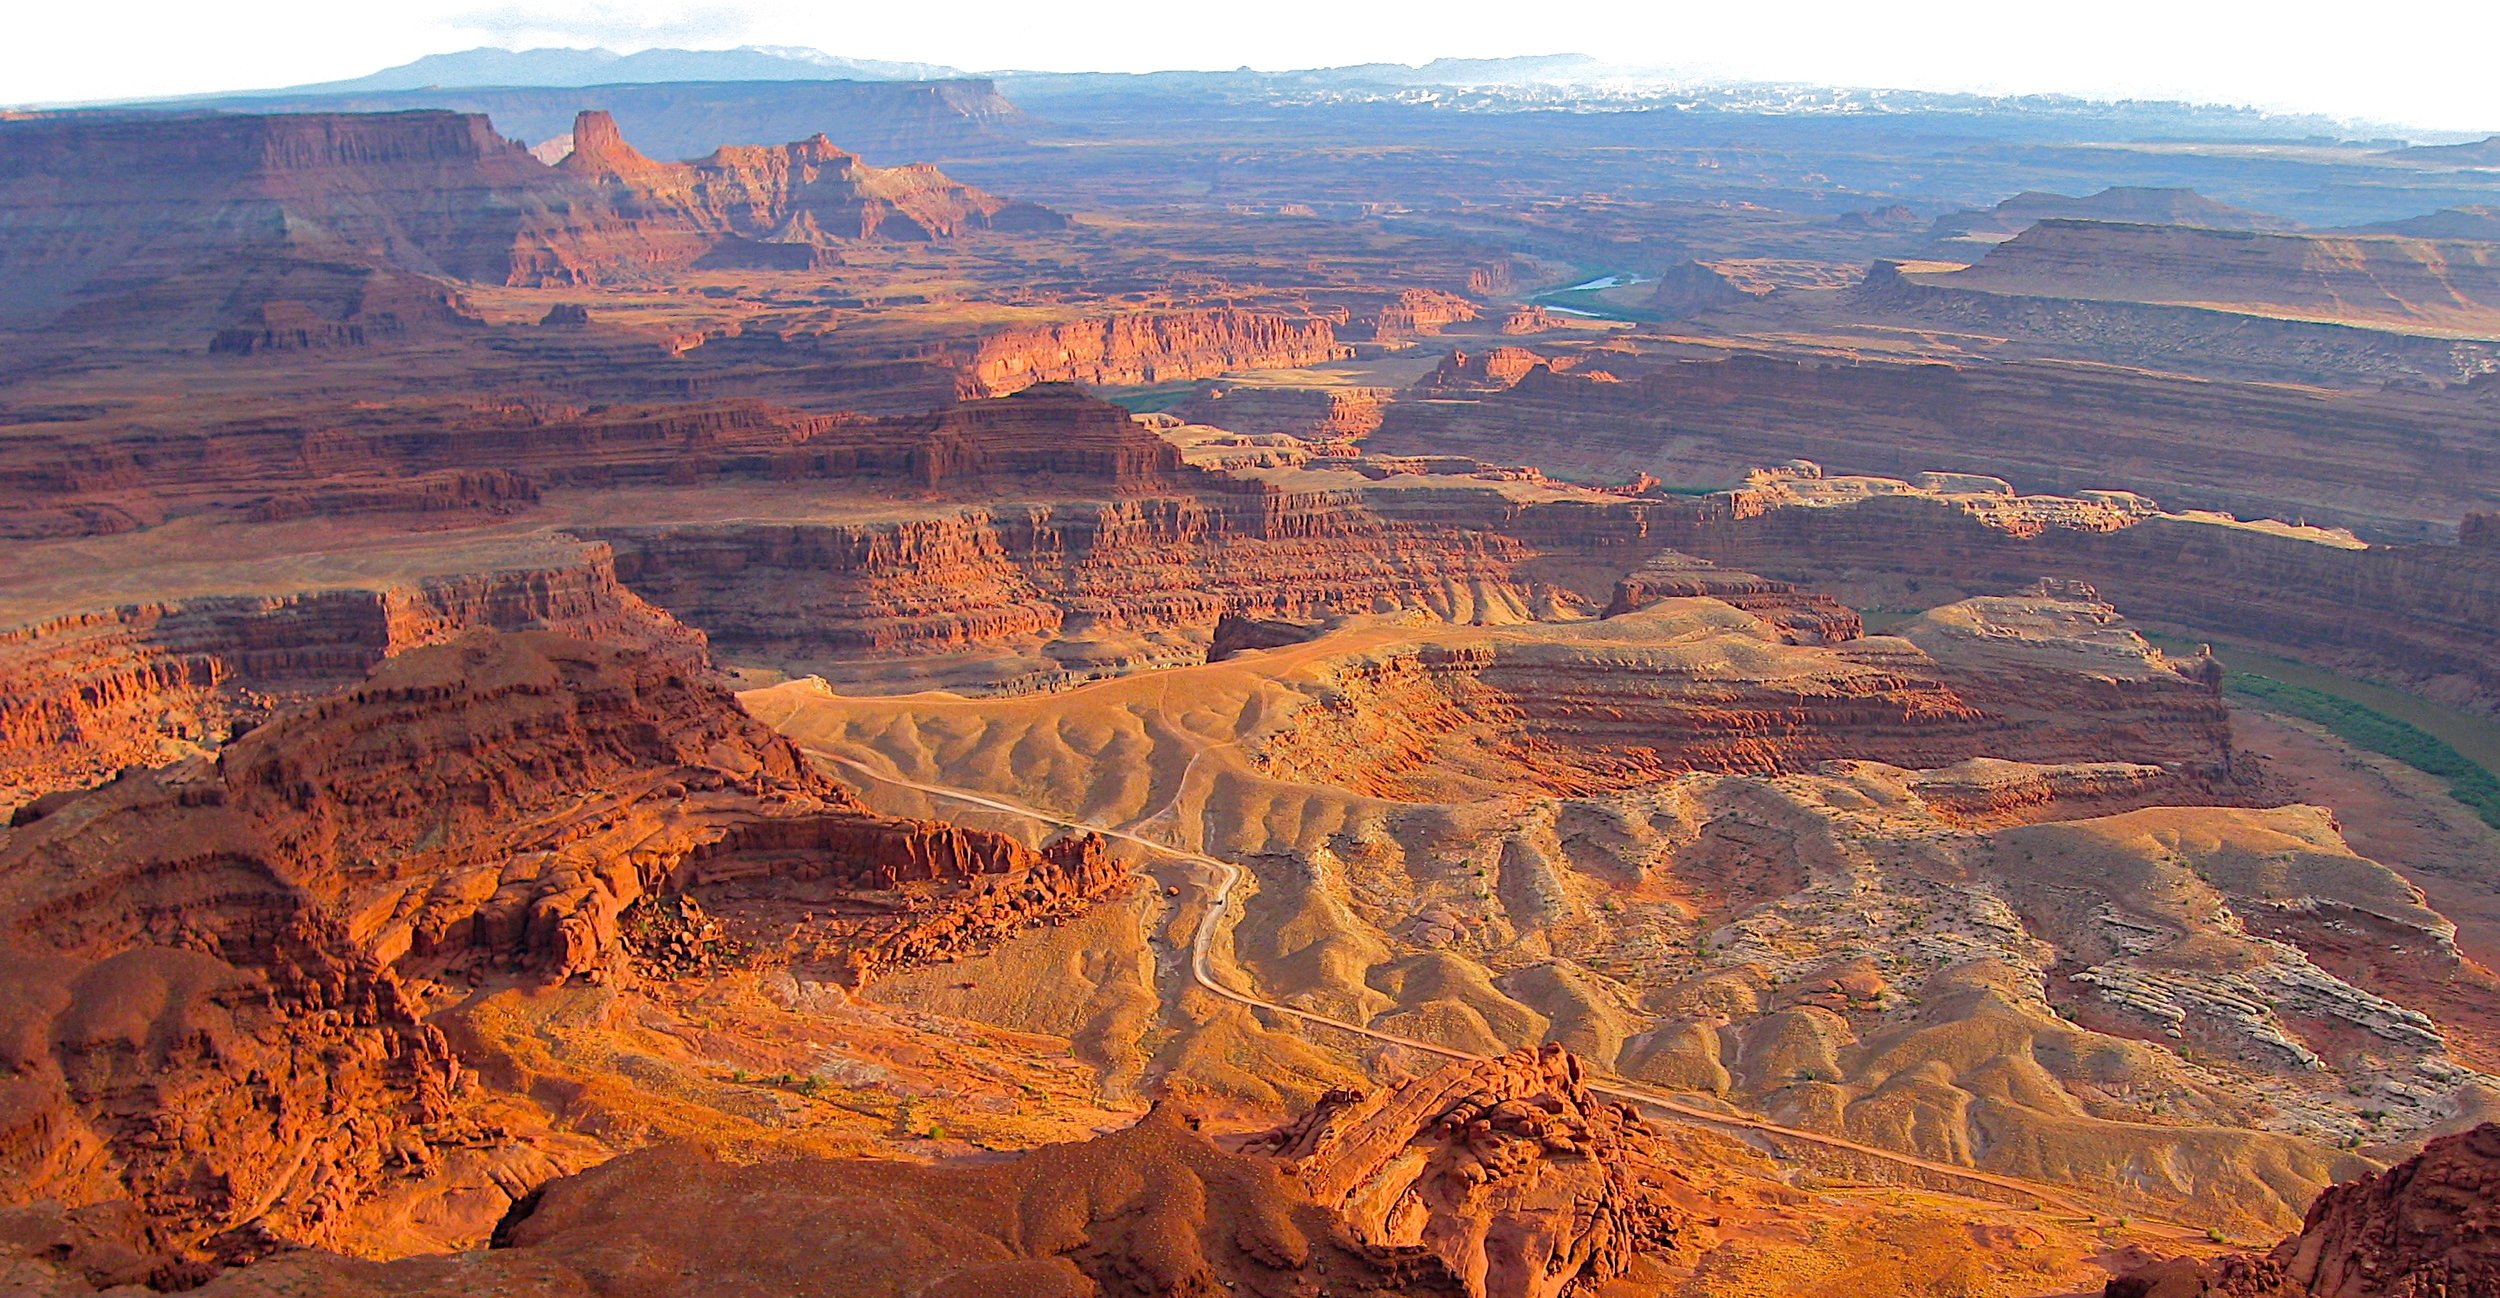 Dead Horse Canyon near Moab, Utah. The view over Canyon lands National Park.